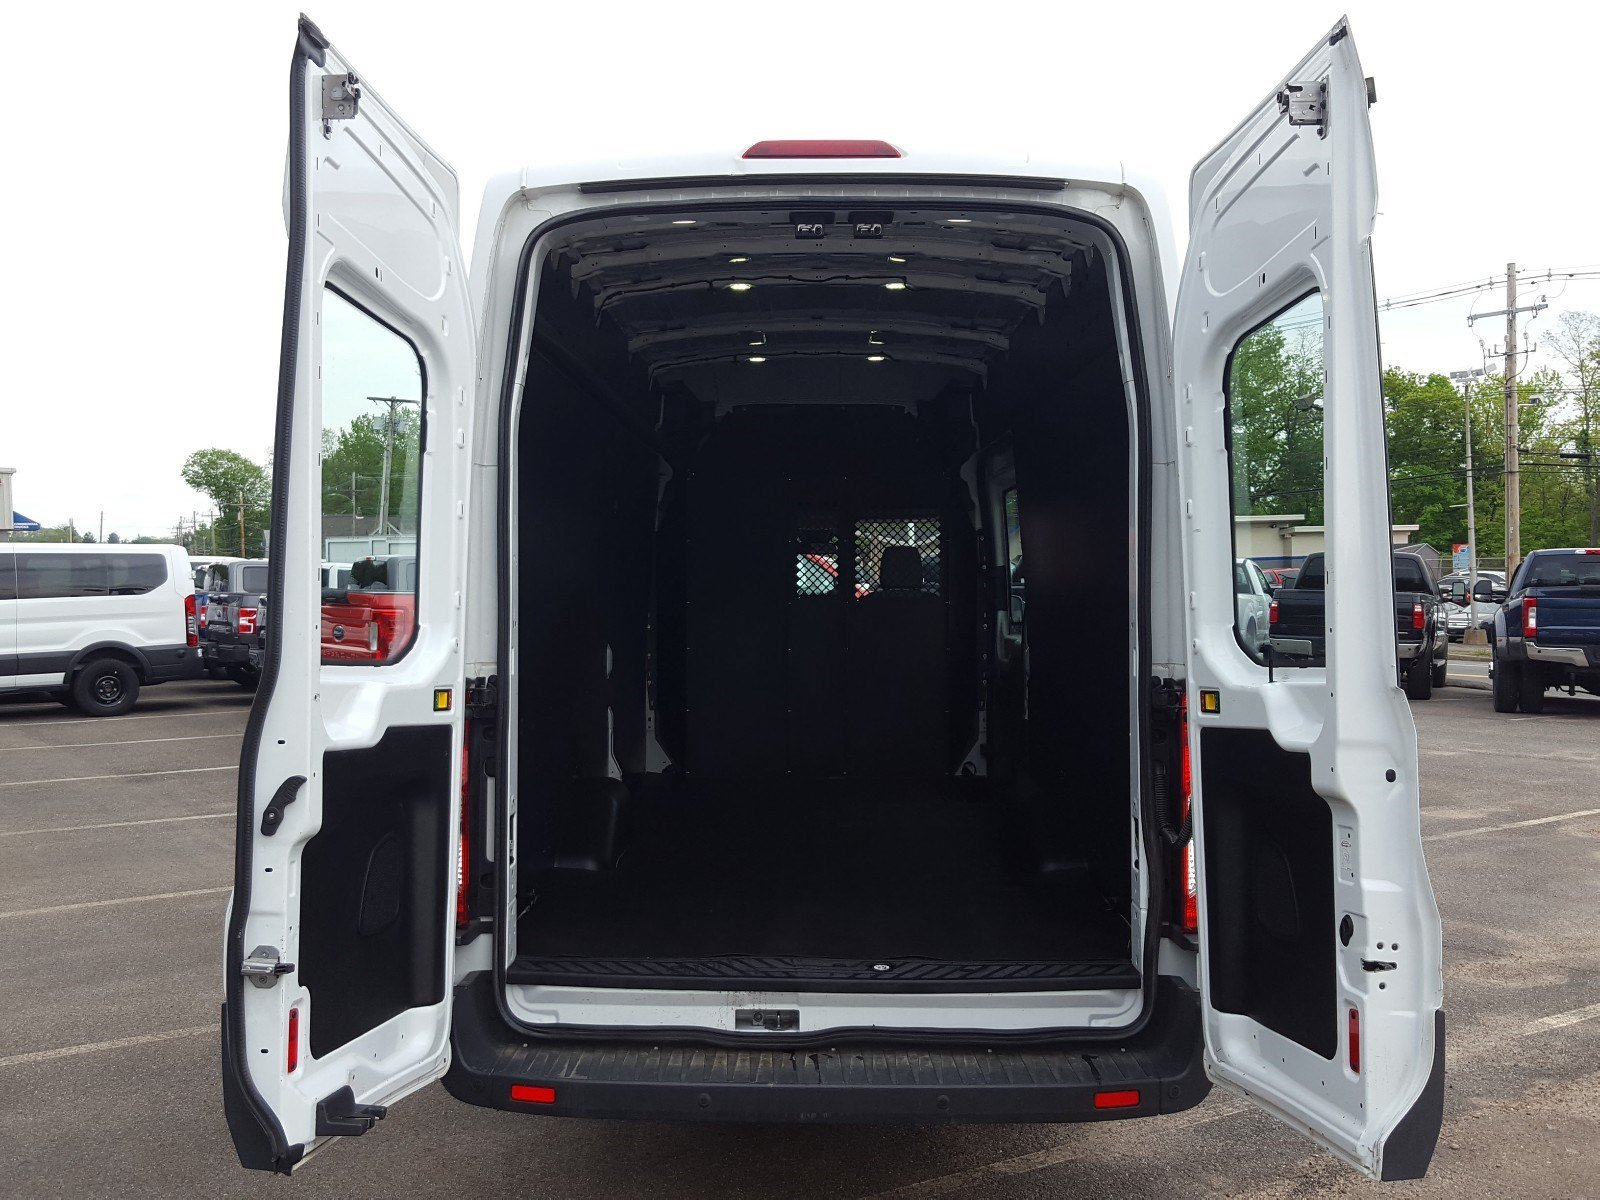 2017 Transit 350 High Roof, Upfitted Van #PBT1625 - photo 3